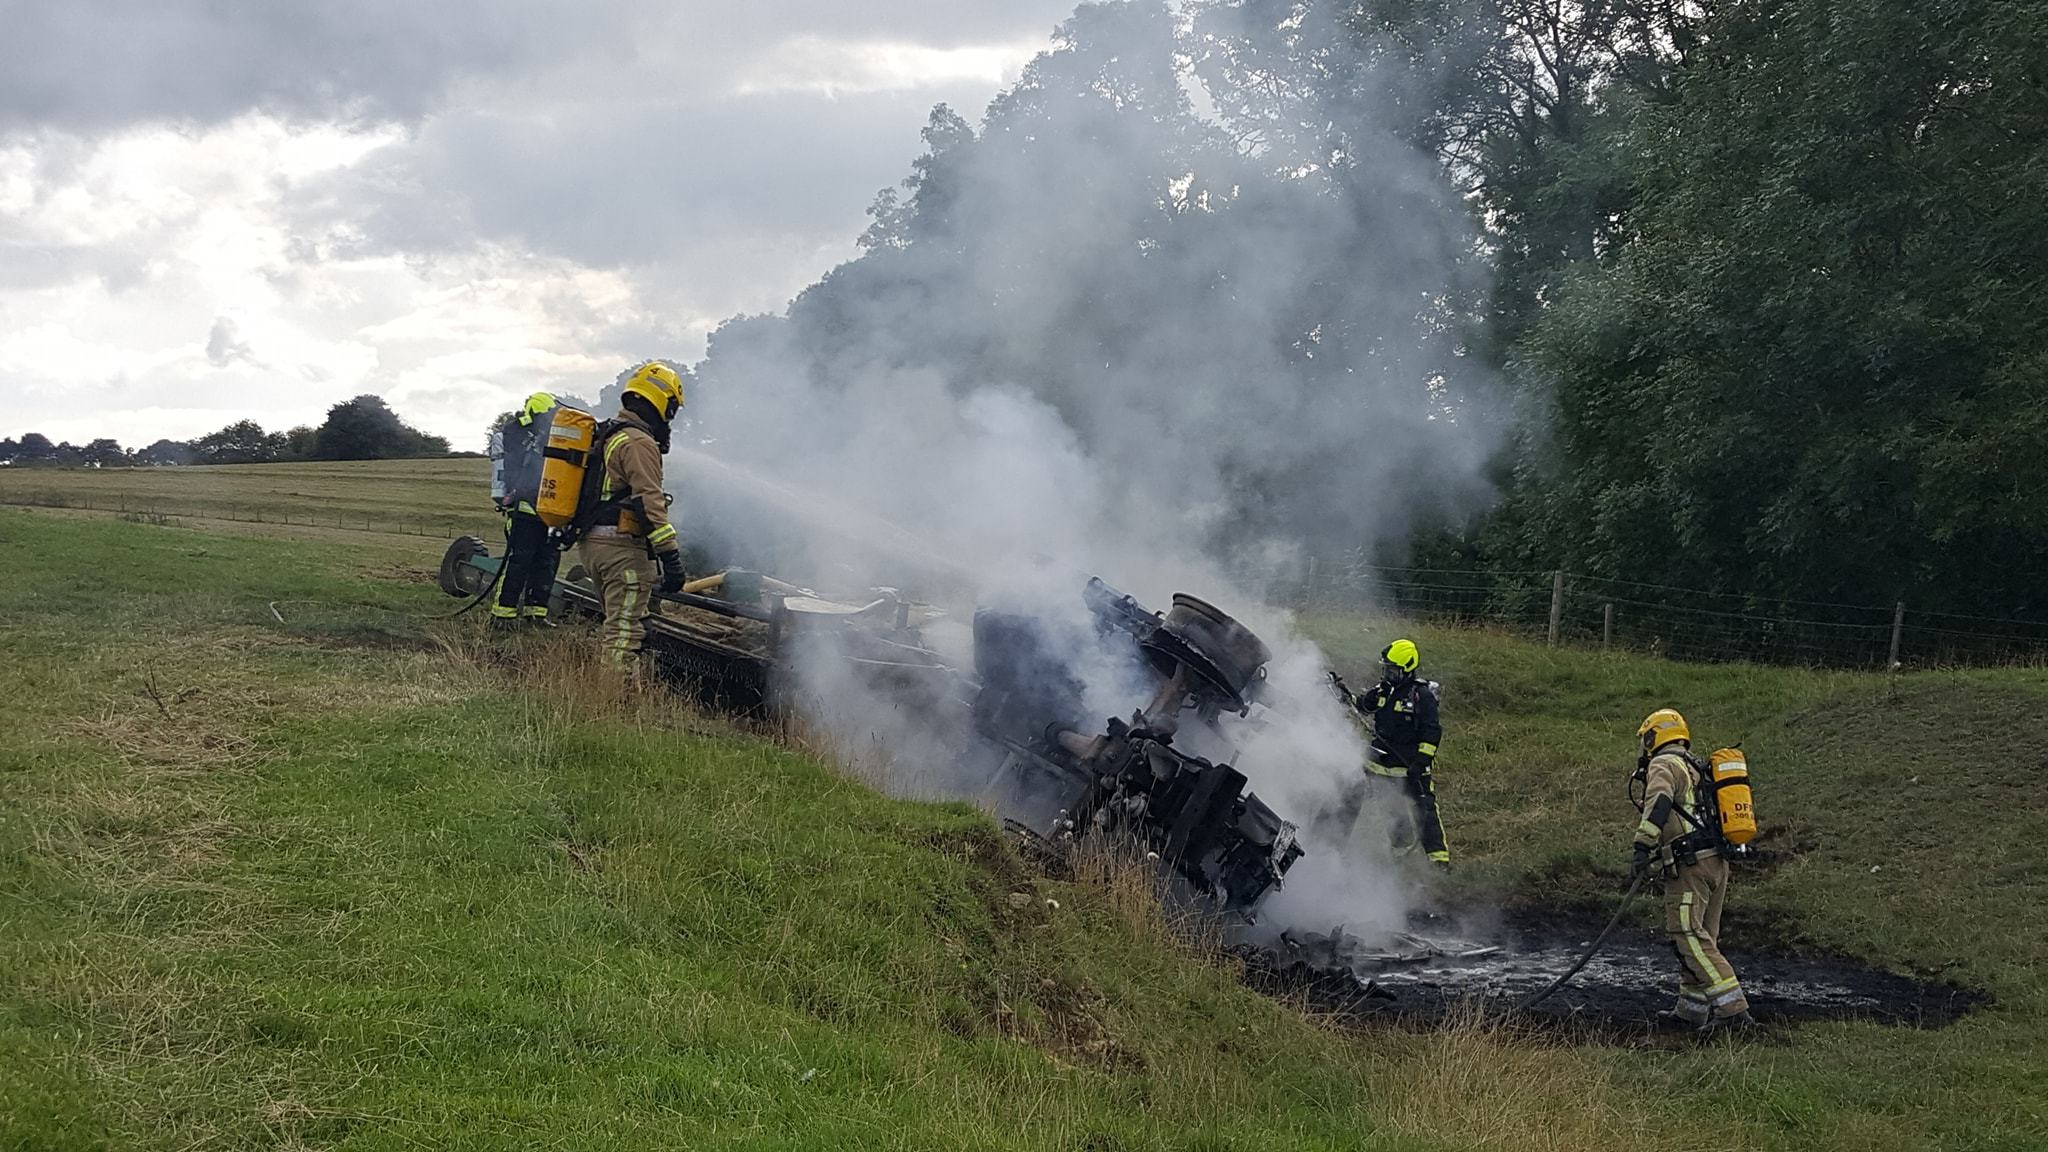 Tractor destroyed by fire in Misterton